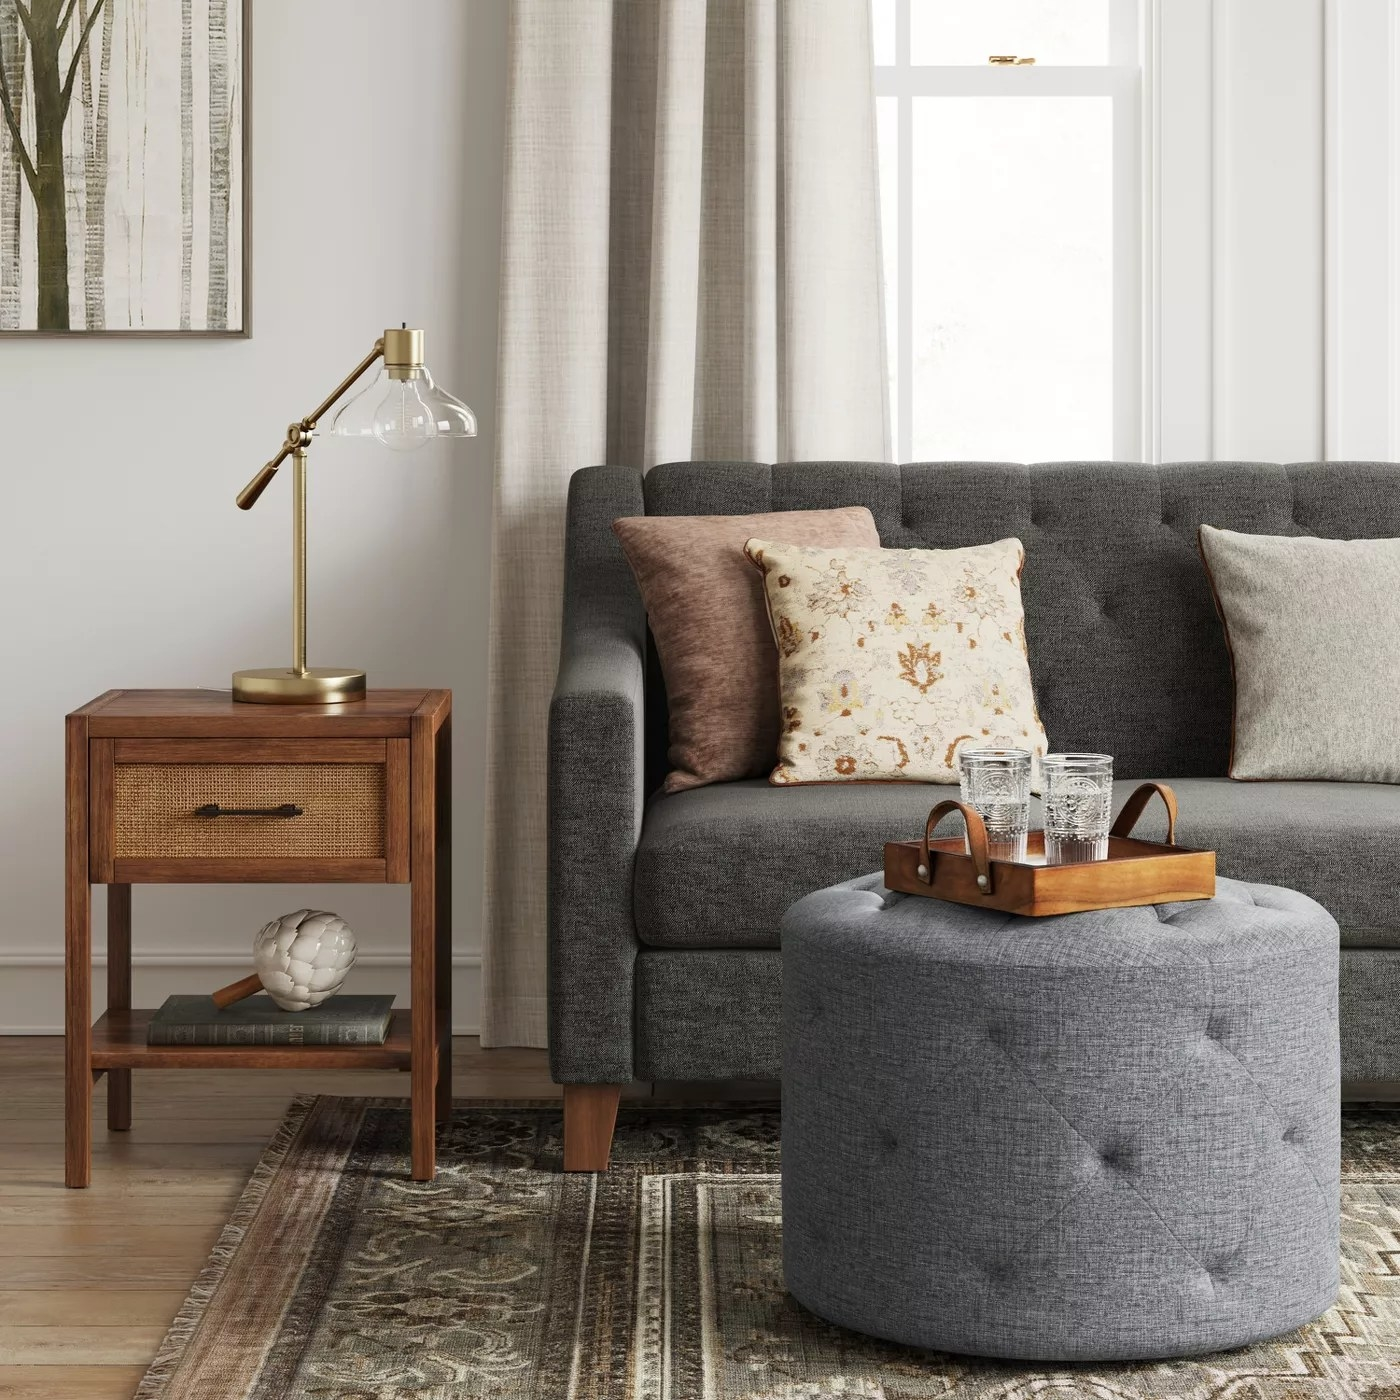 The tufted ottoman in charcoal